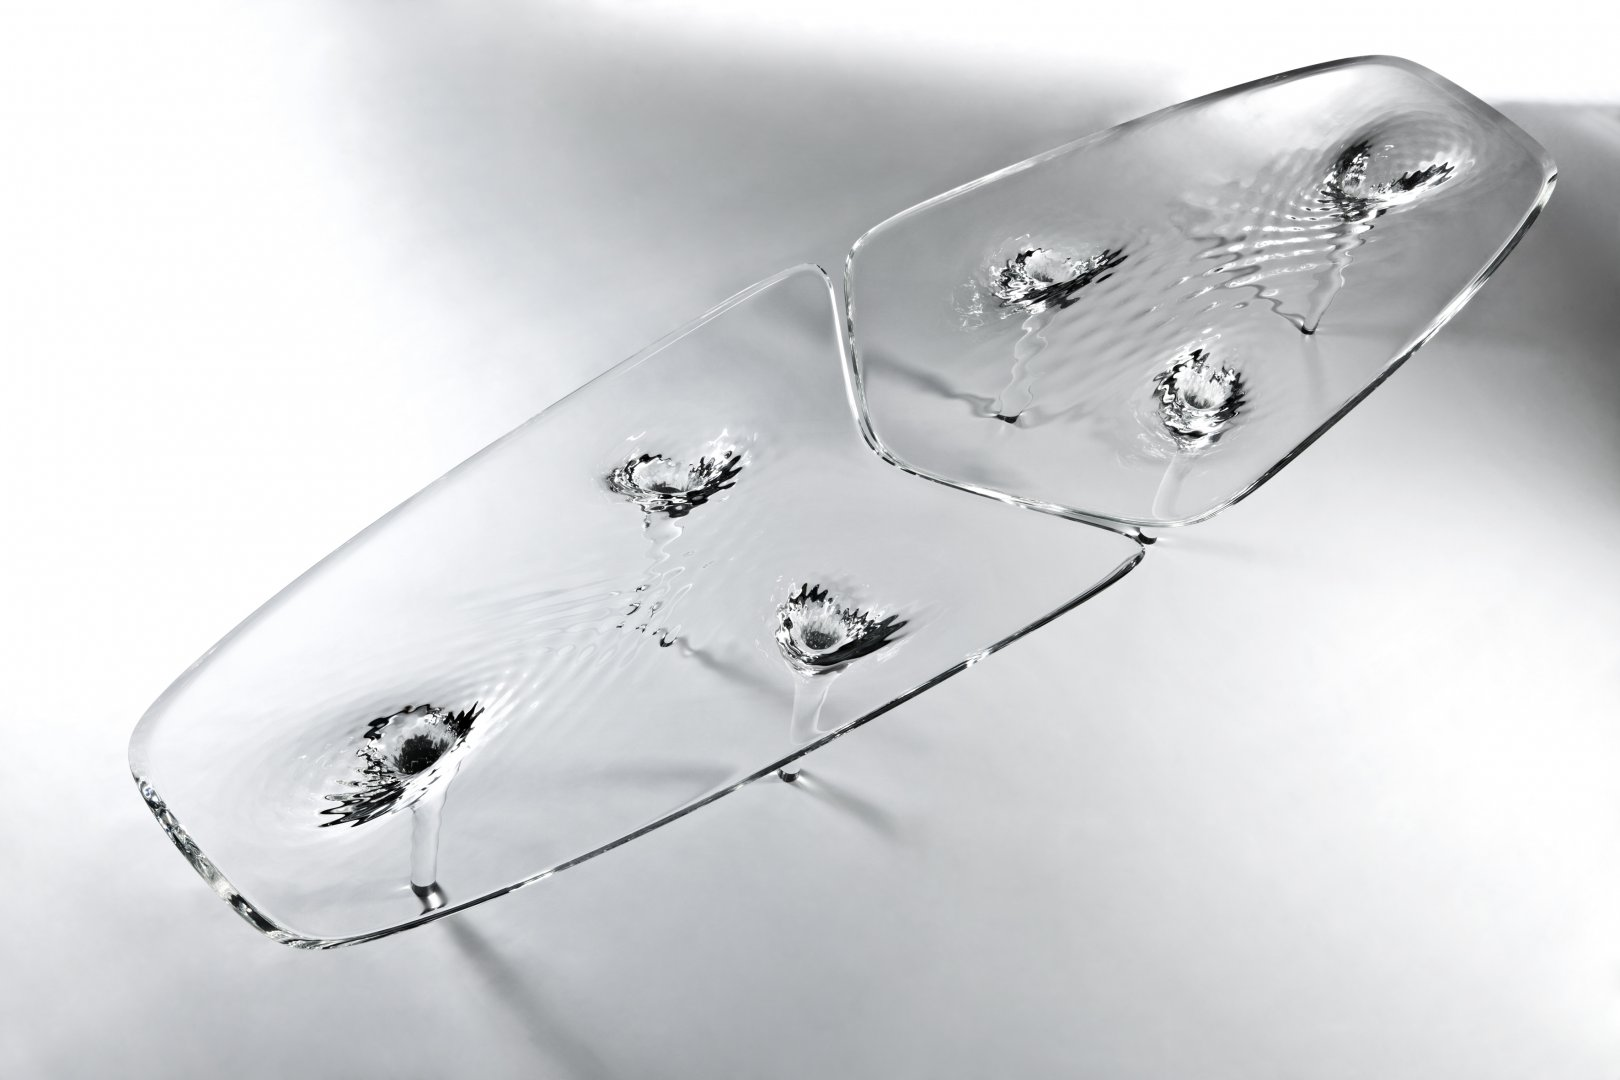 The 7 Most Unique Furniture Designs of All Time unique furniture designs The 7 Most Unique Furniture Designs of All Time 7 unique furniture designs of all time zaha hadid liquid glacial table